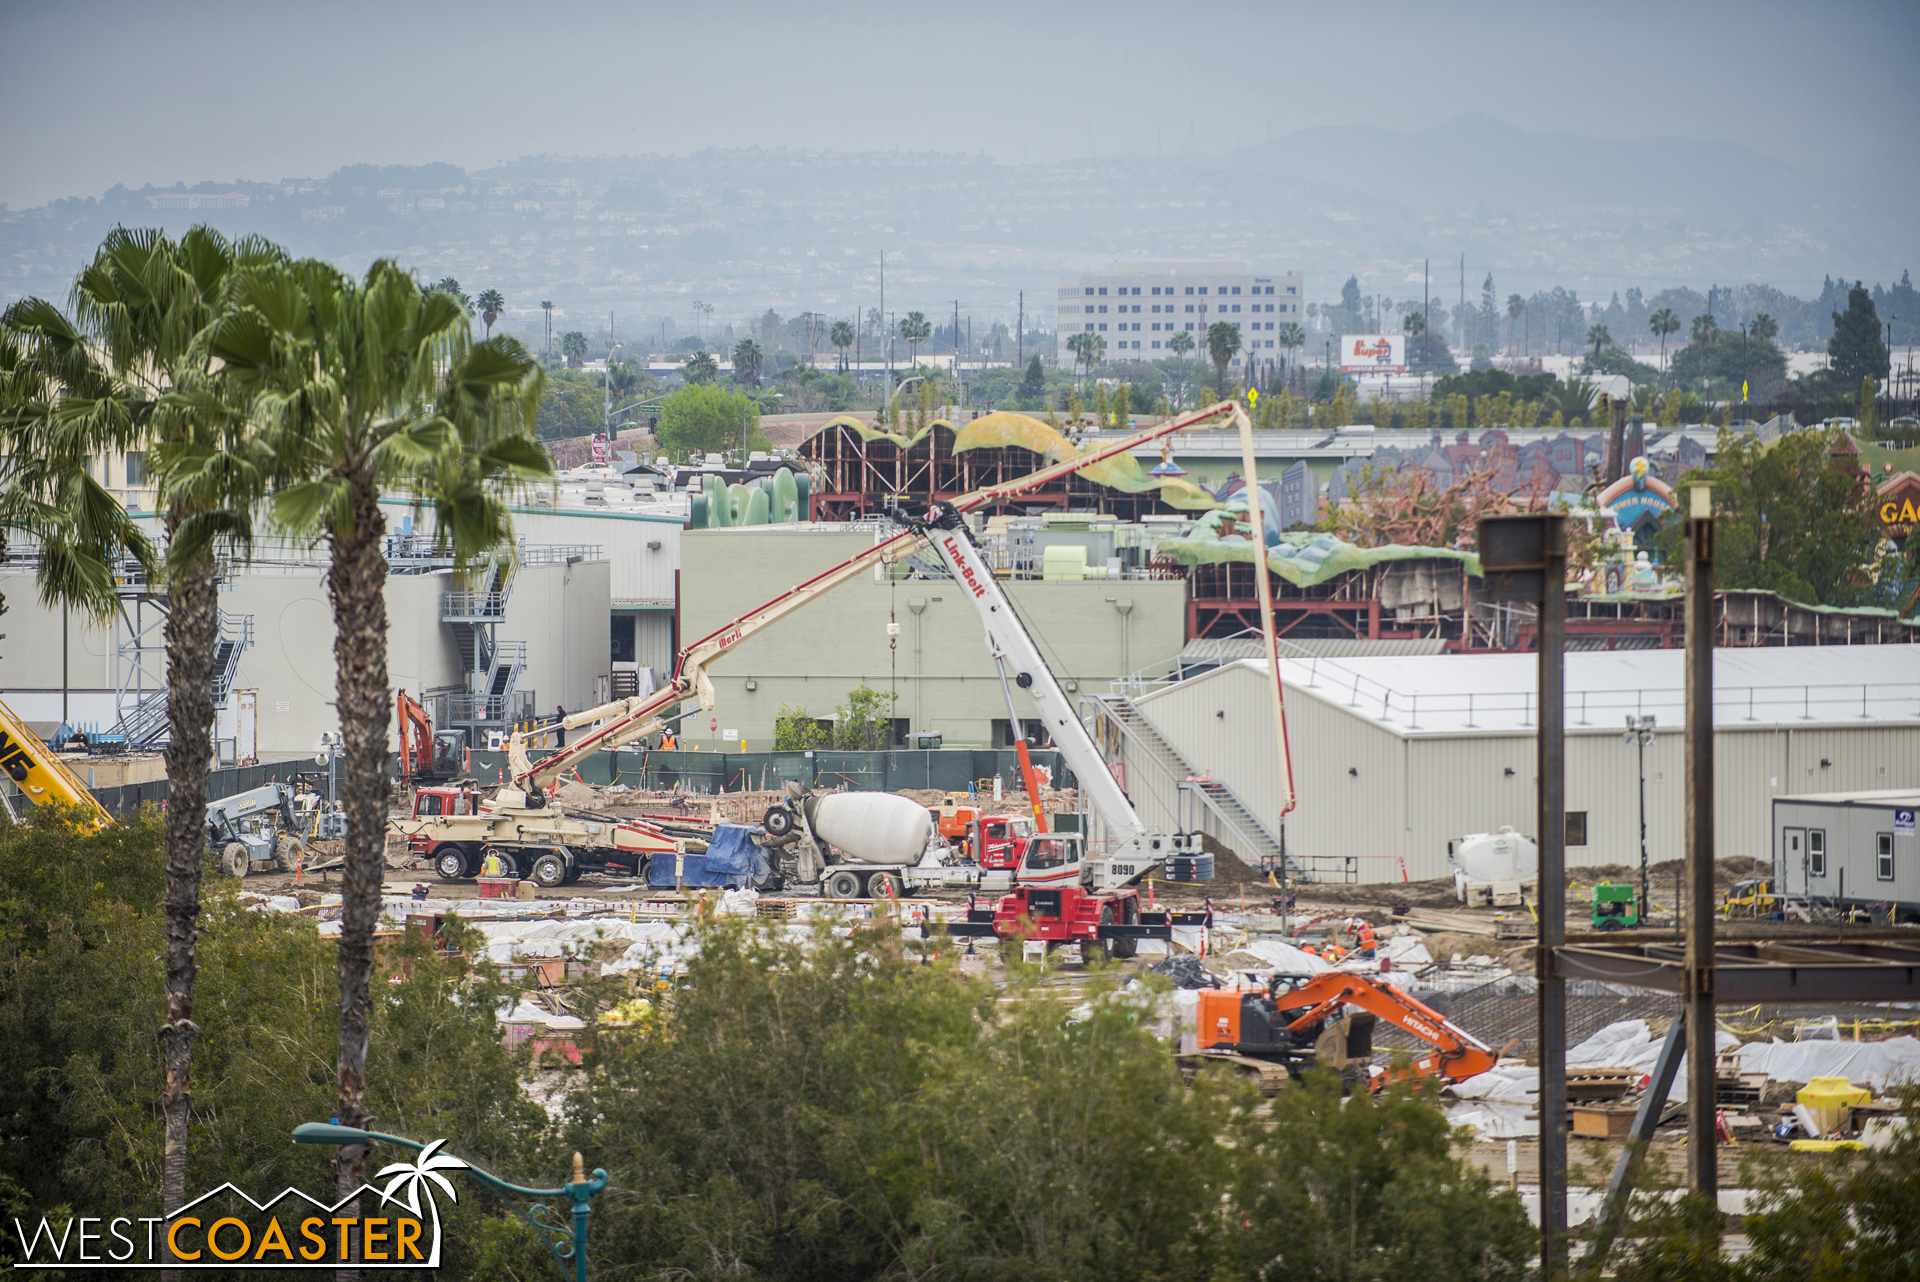 Over in the back corner, near Mickey's Toontown, concrete trucks appear to be pouring concrete for another building.